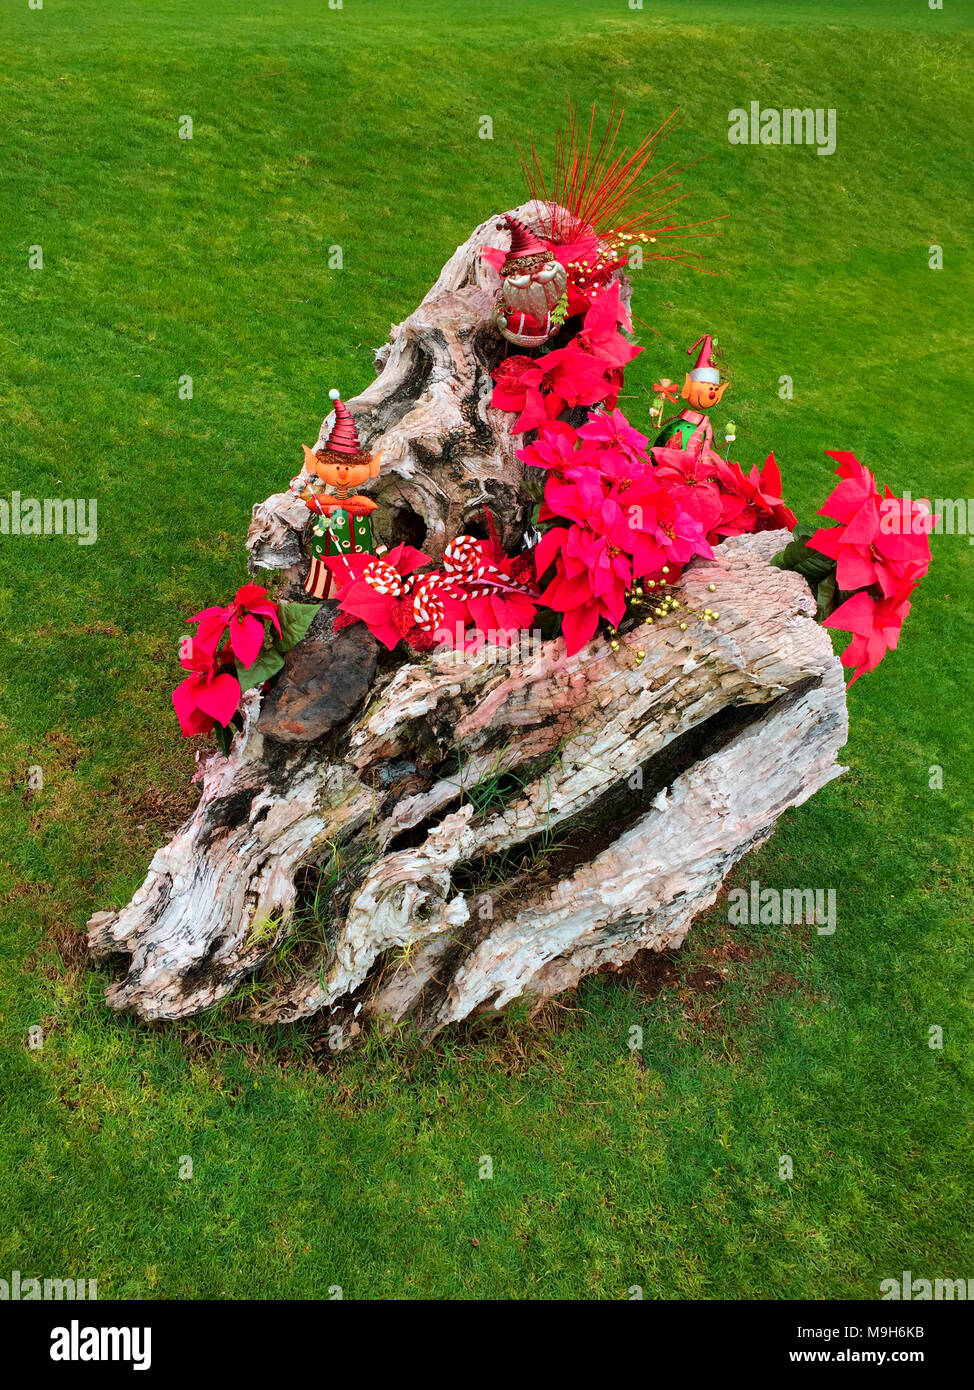 An Old Tree Stump Is The Base For Poinsettia Plants And Other